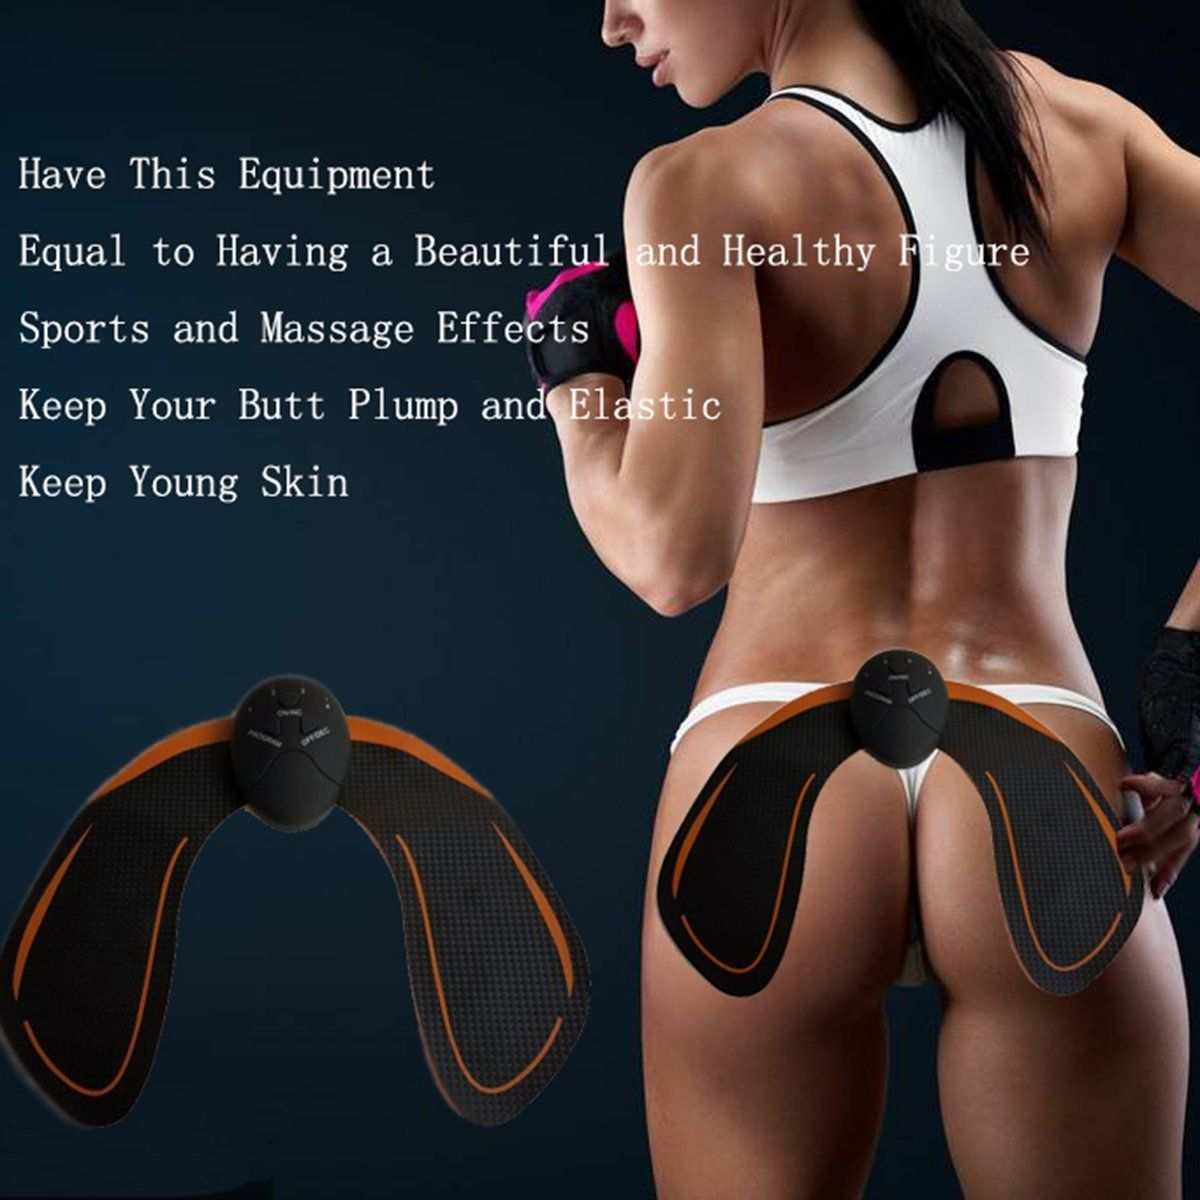 Instant Abs - EMS Instant ABS Hips Trainer Muscle Strengthening System Wireless  Body Beauty  For Buttocks Lifting Firm Shaping (Black)